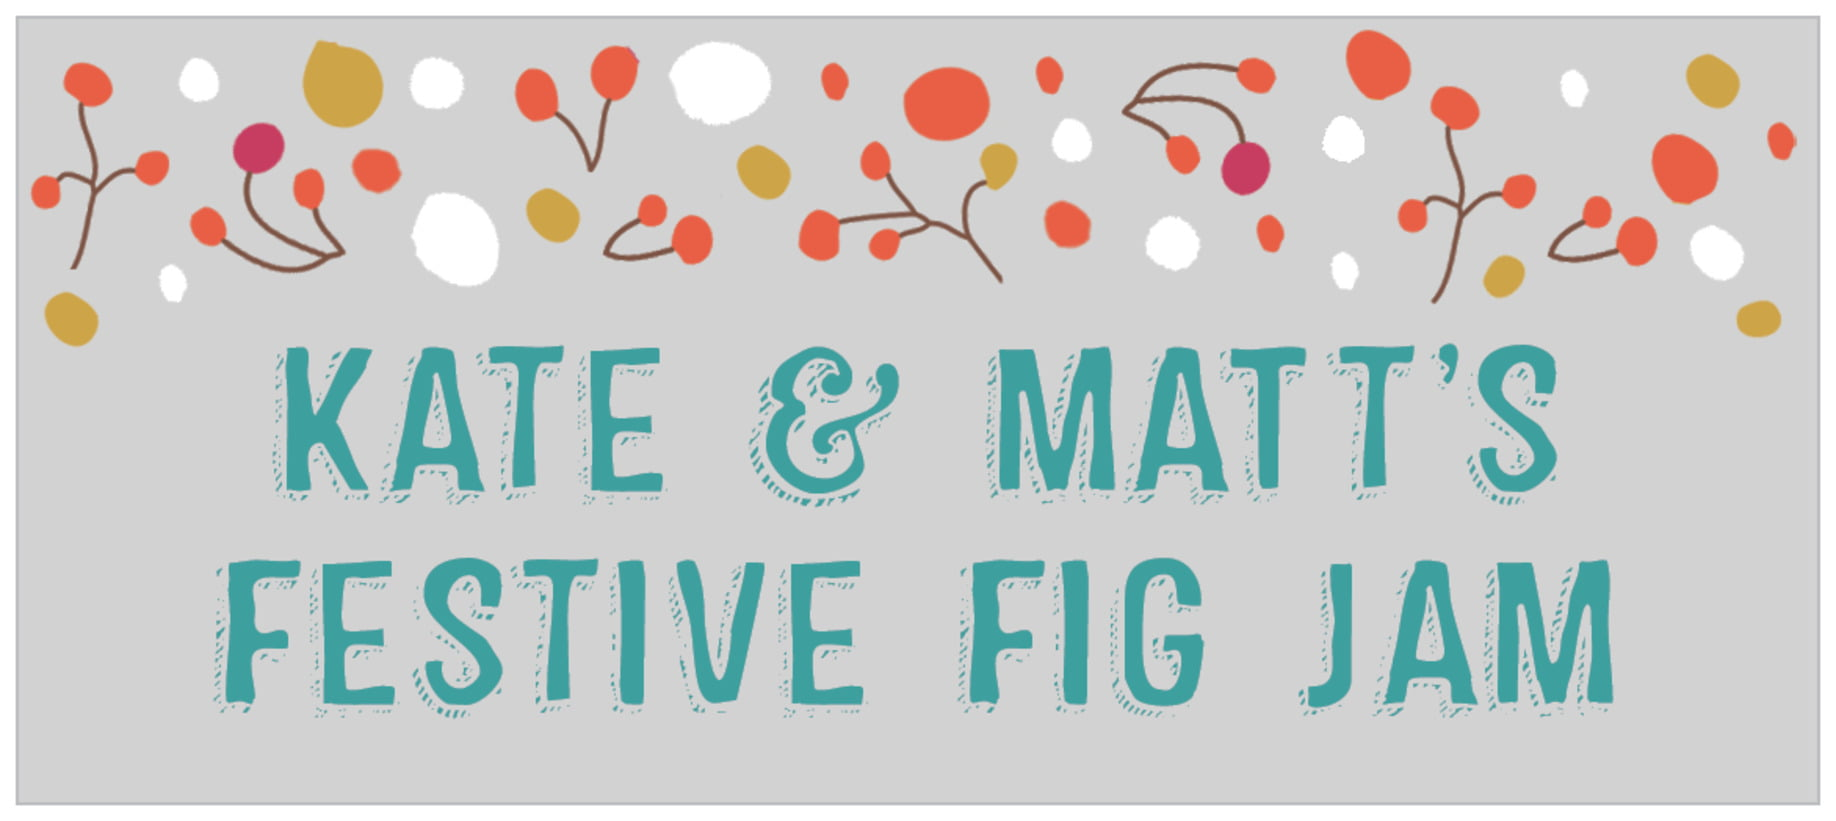 small rectangle food/craft labels - stone - festive gifts (set of 24)